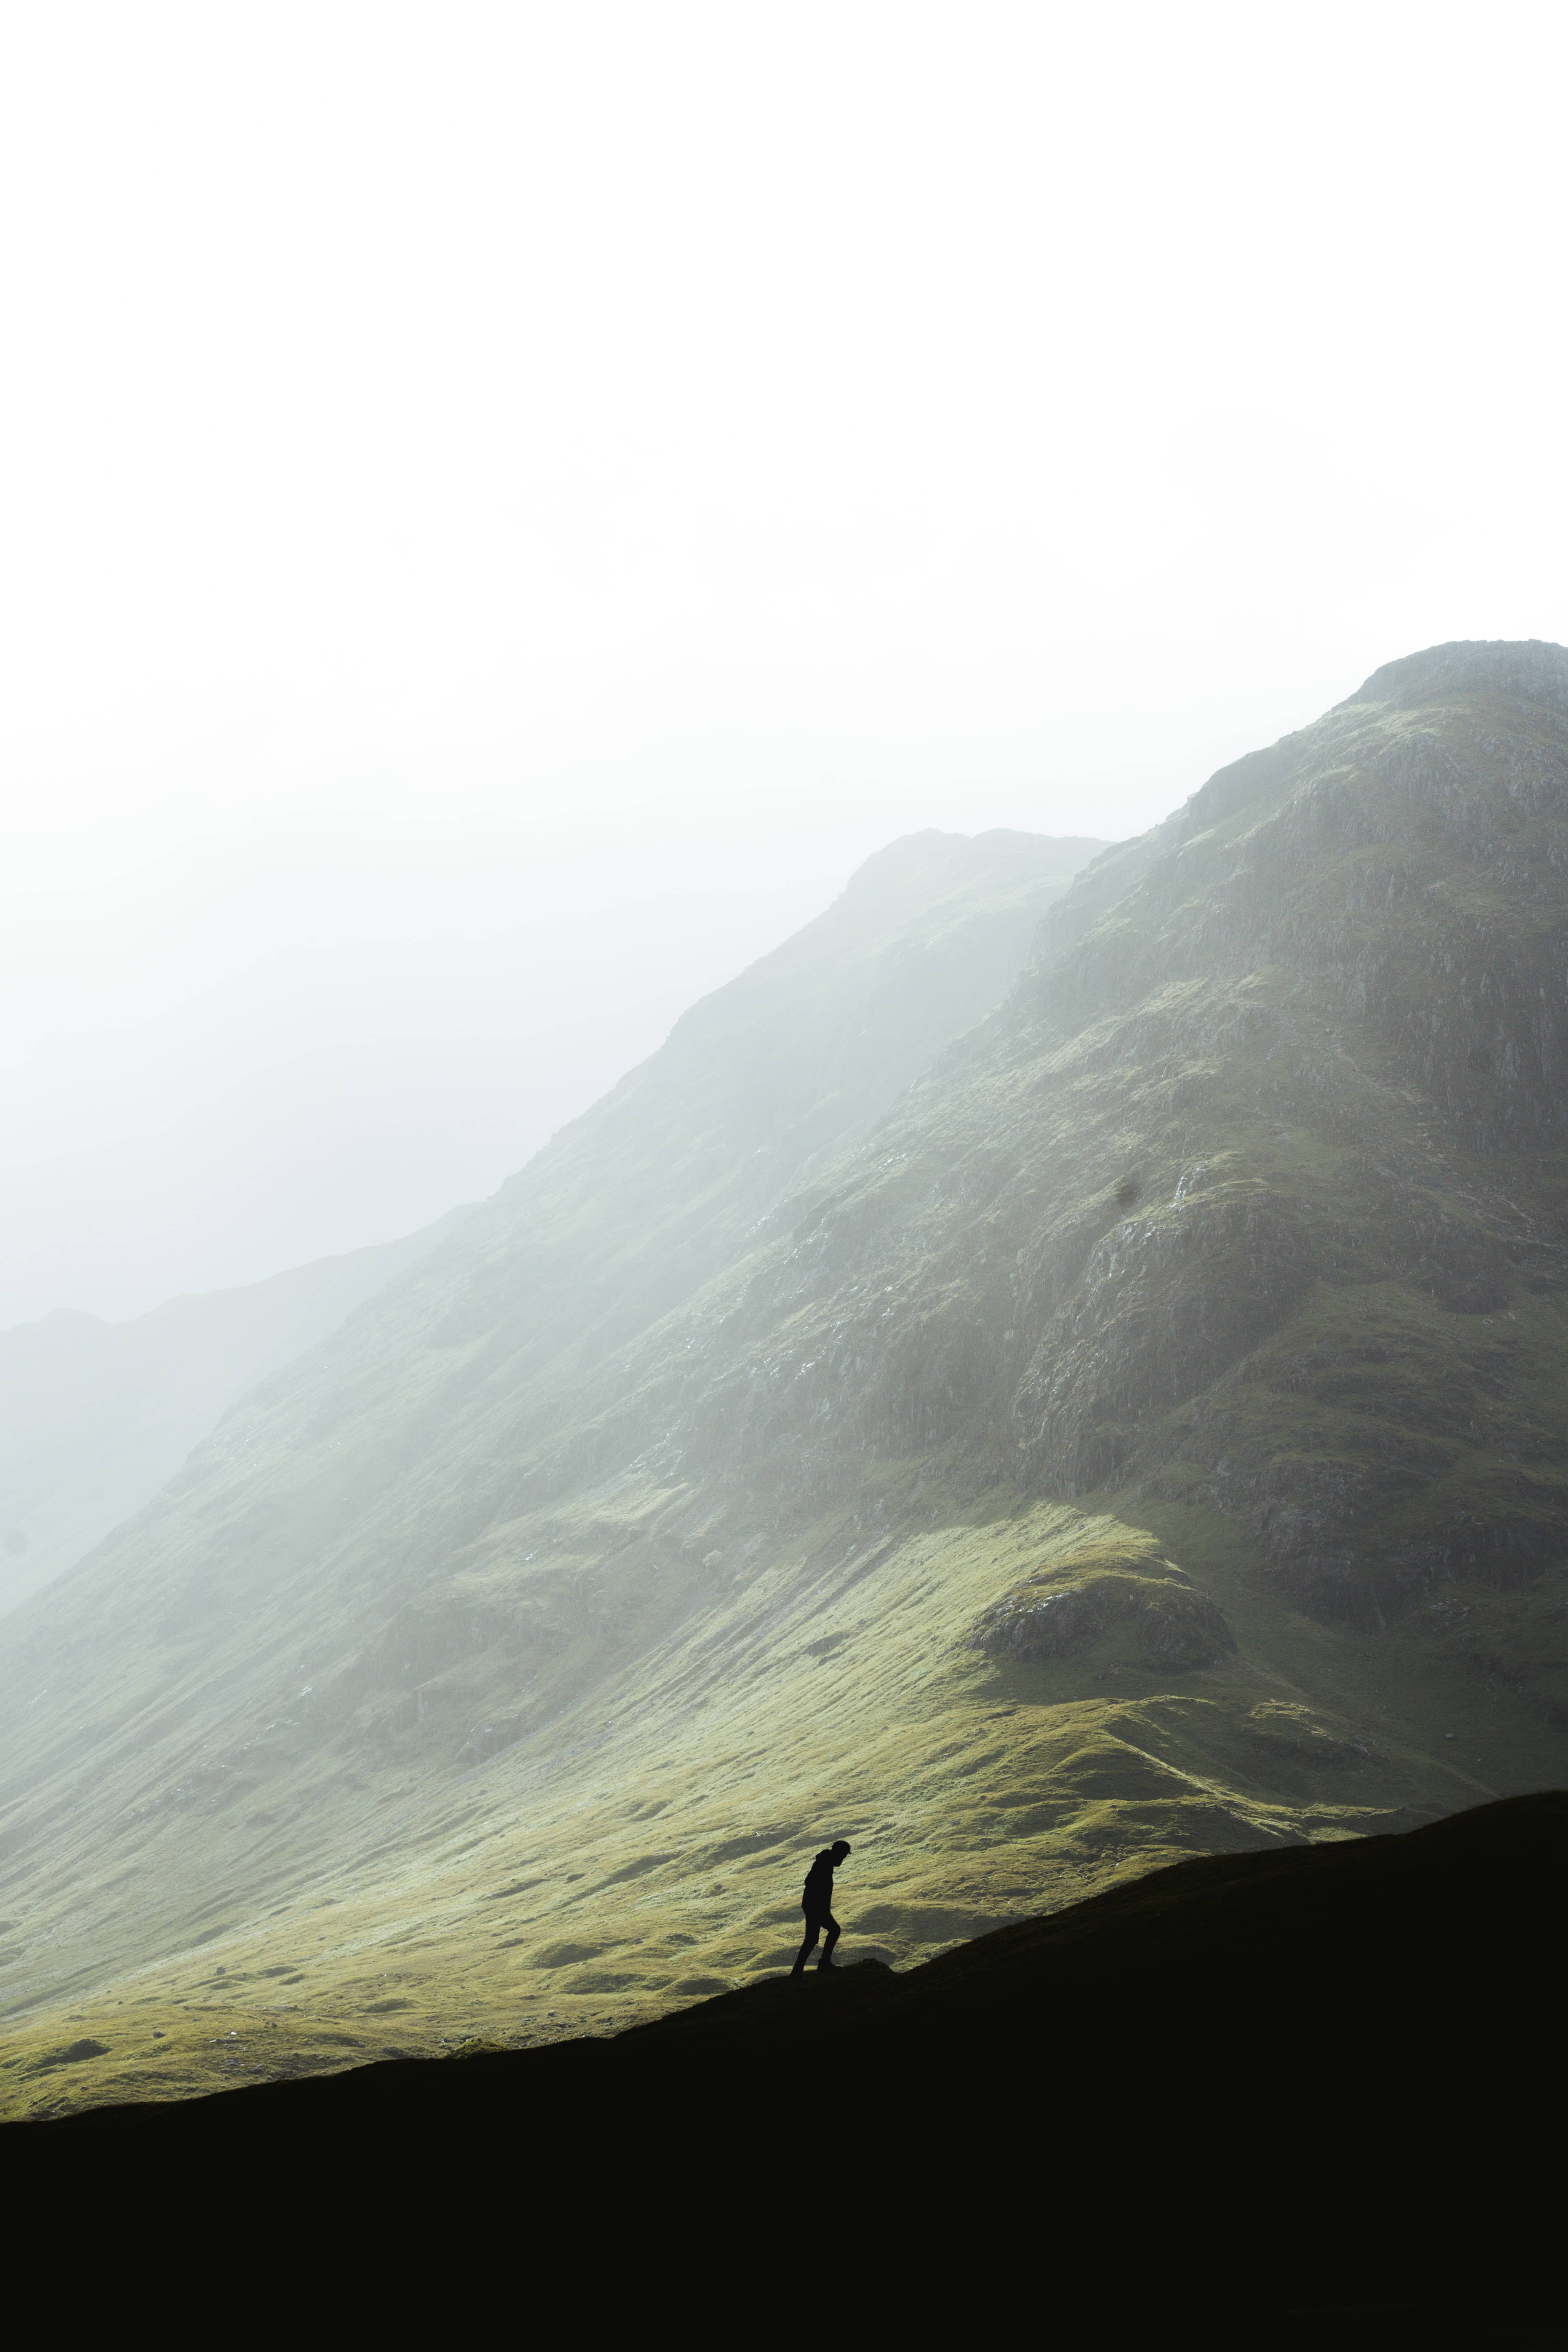 Silhouette of wanderer hiking up a hill in Scottish green highlands